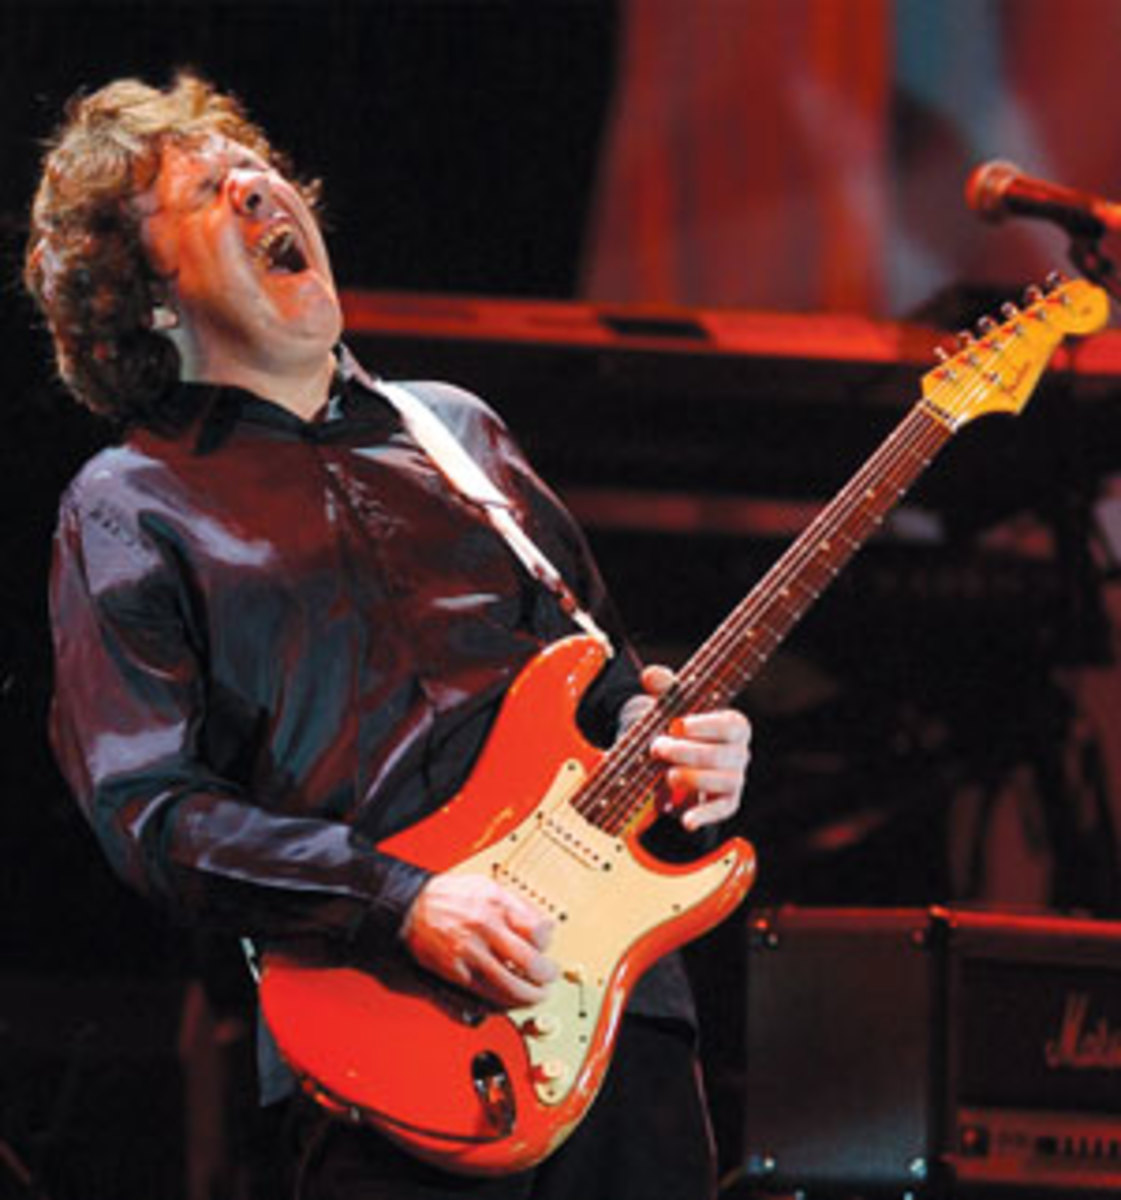 MOORE performs at the Wembley Arena in London, England, 2004 (AP Photo/Richard Lewis).